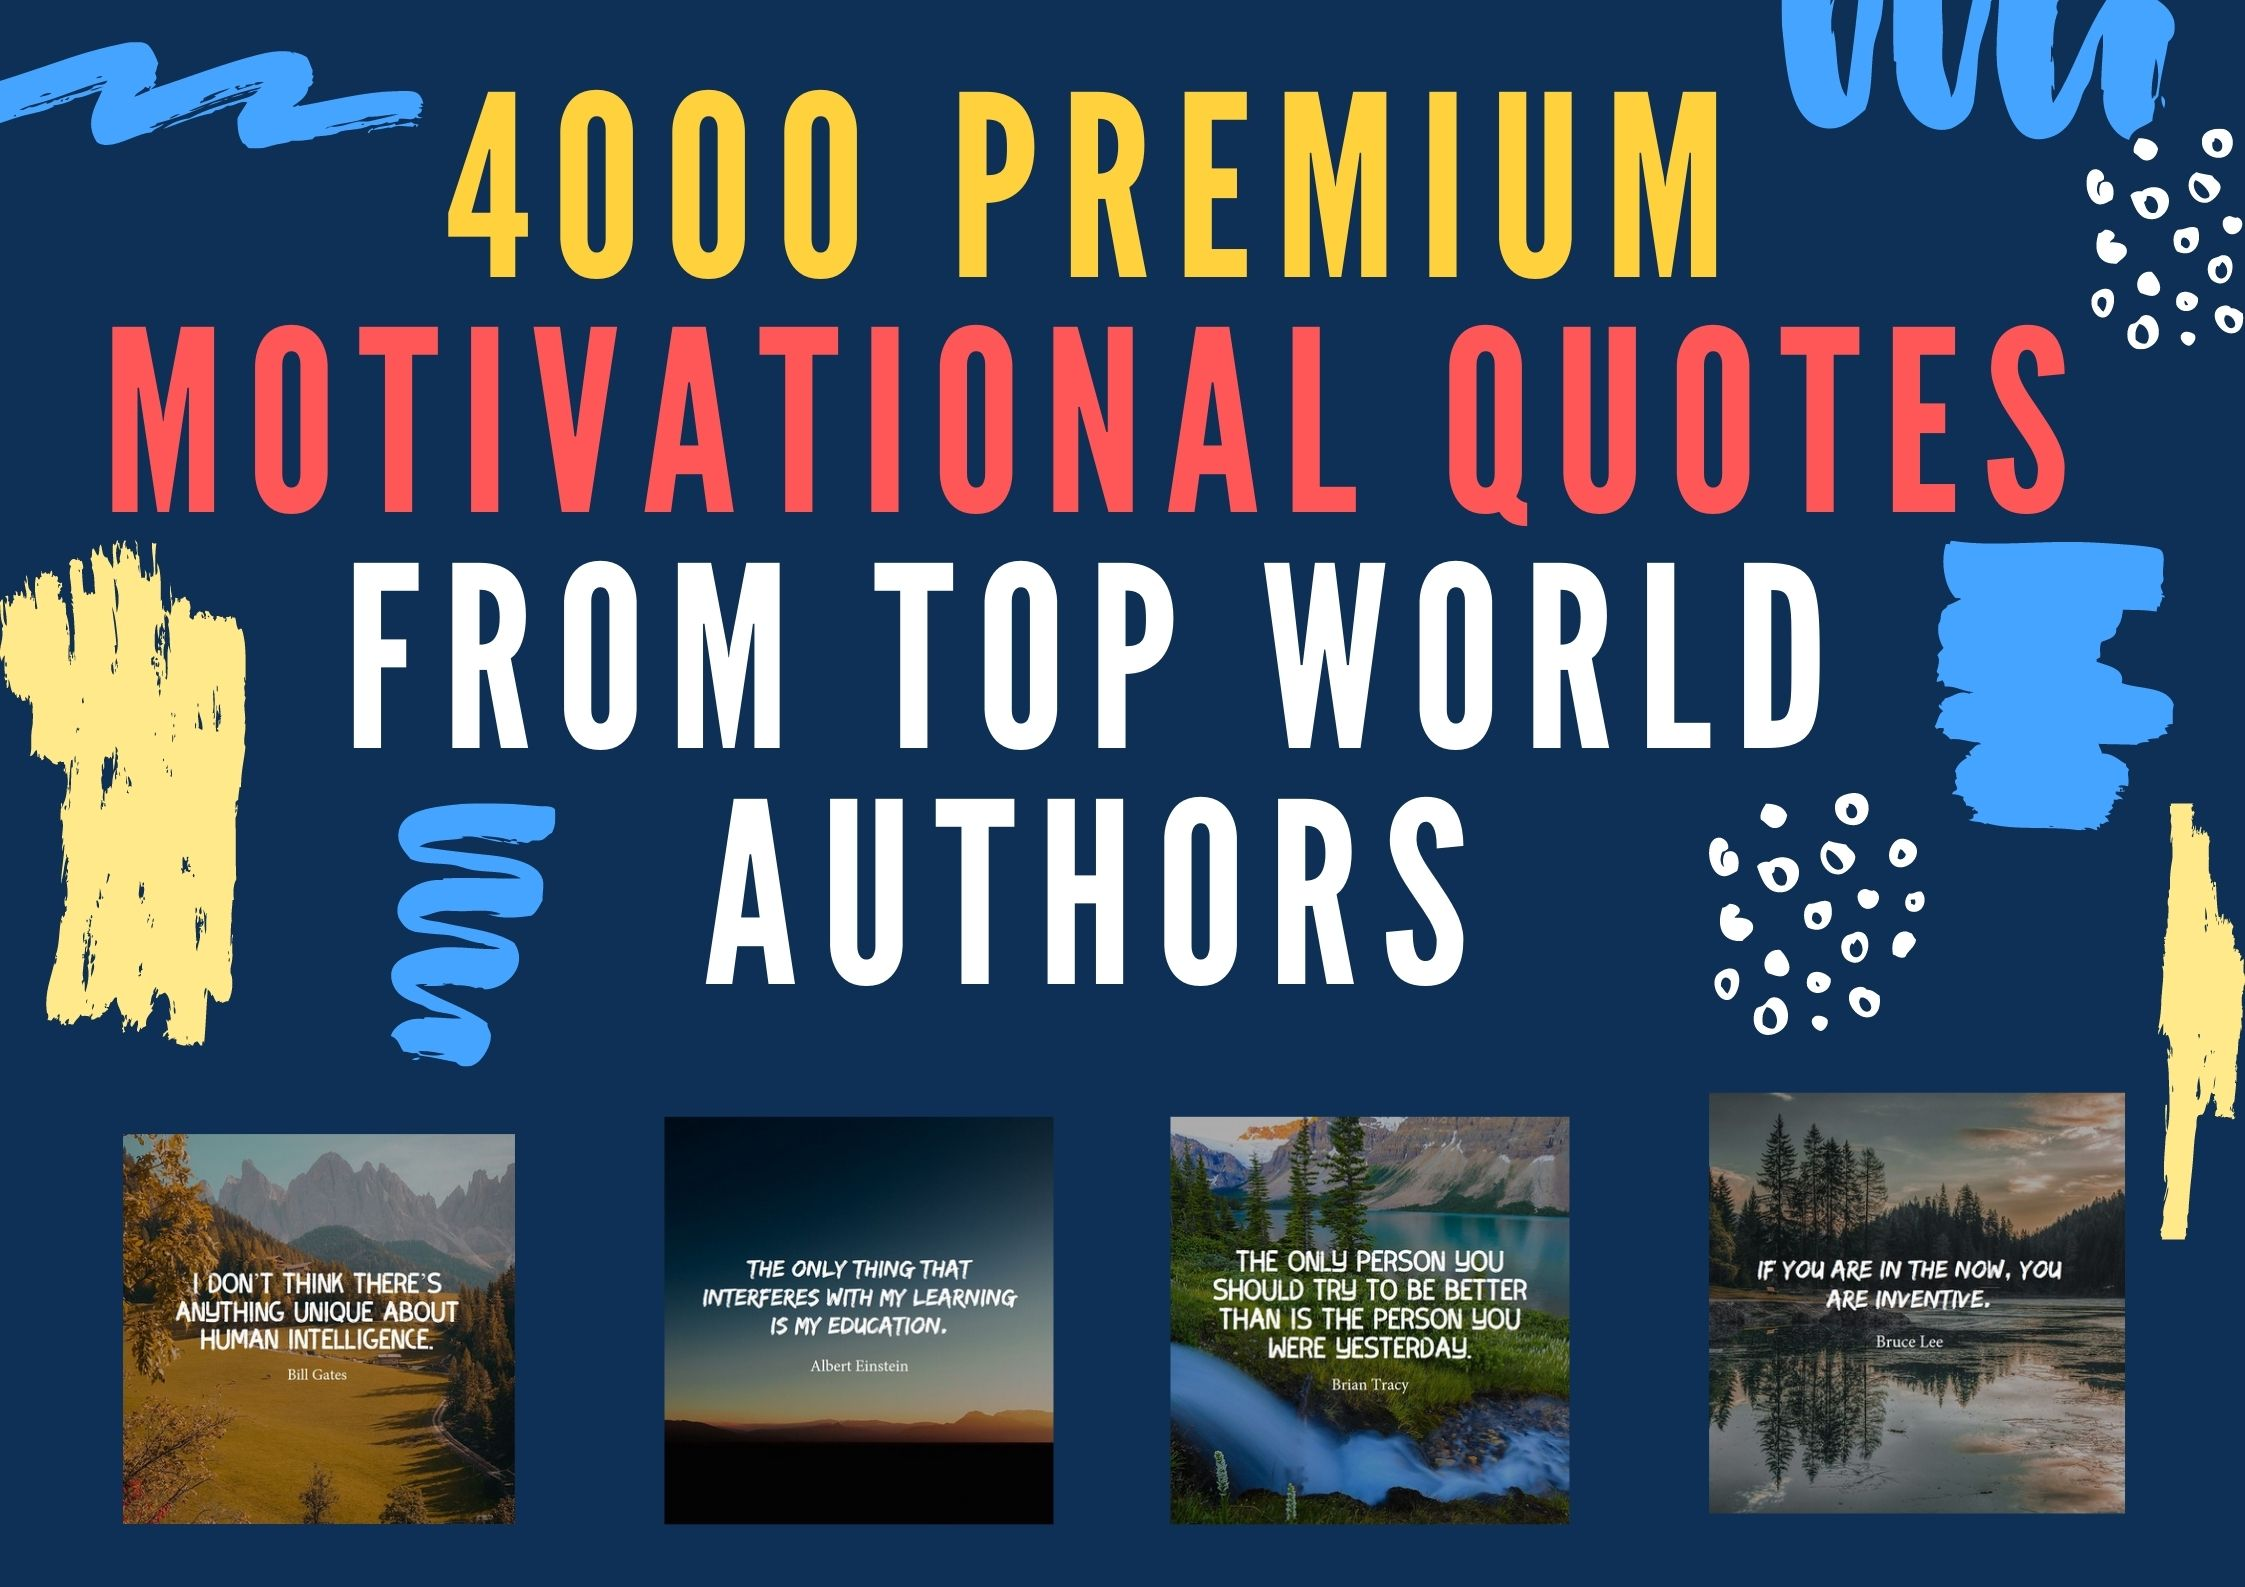 Get 4000 Premium Motivational Quotes From Top World Authors